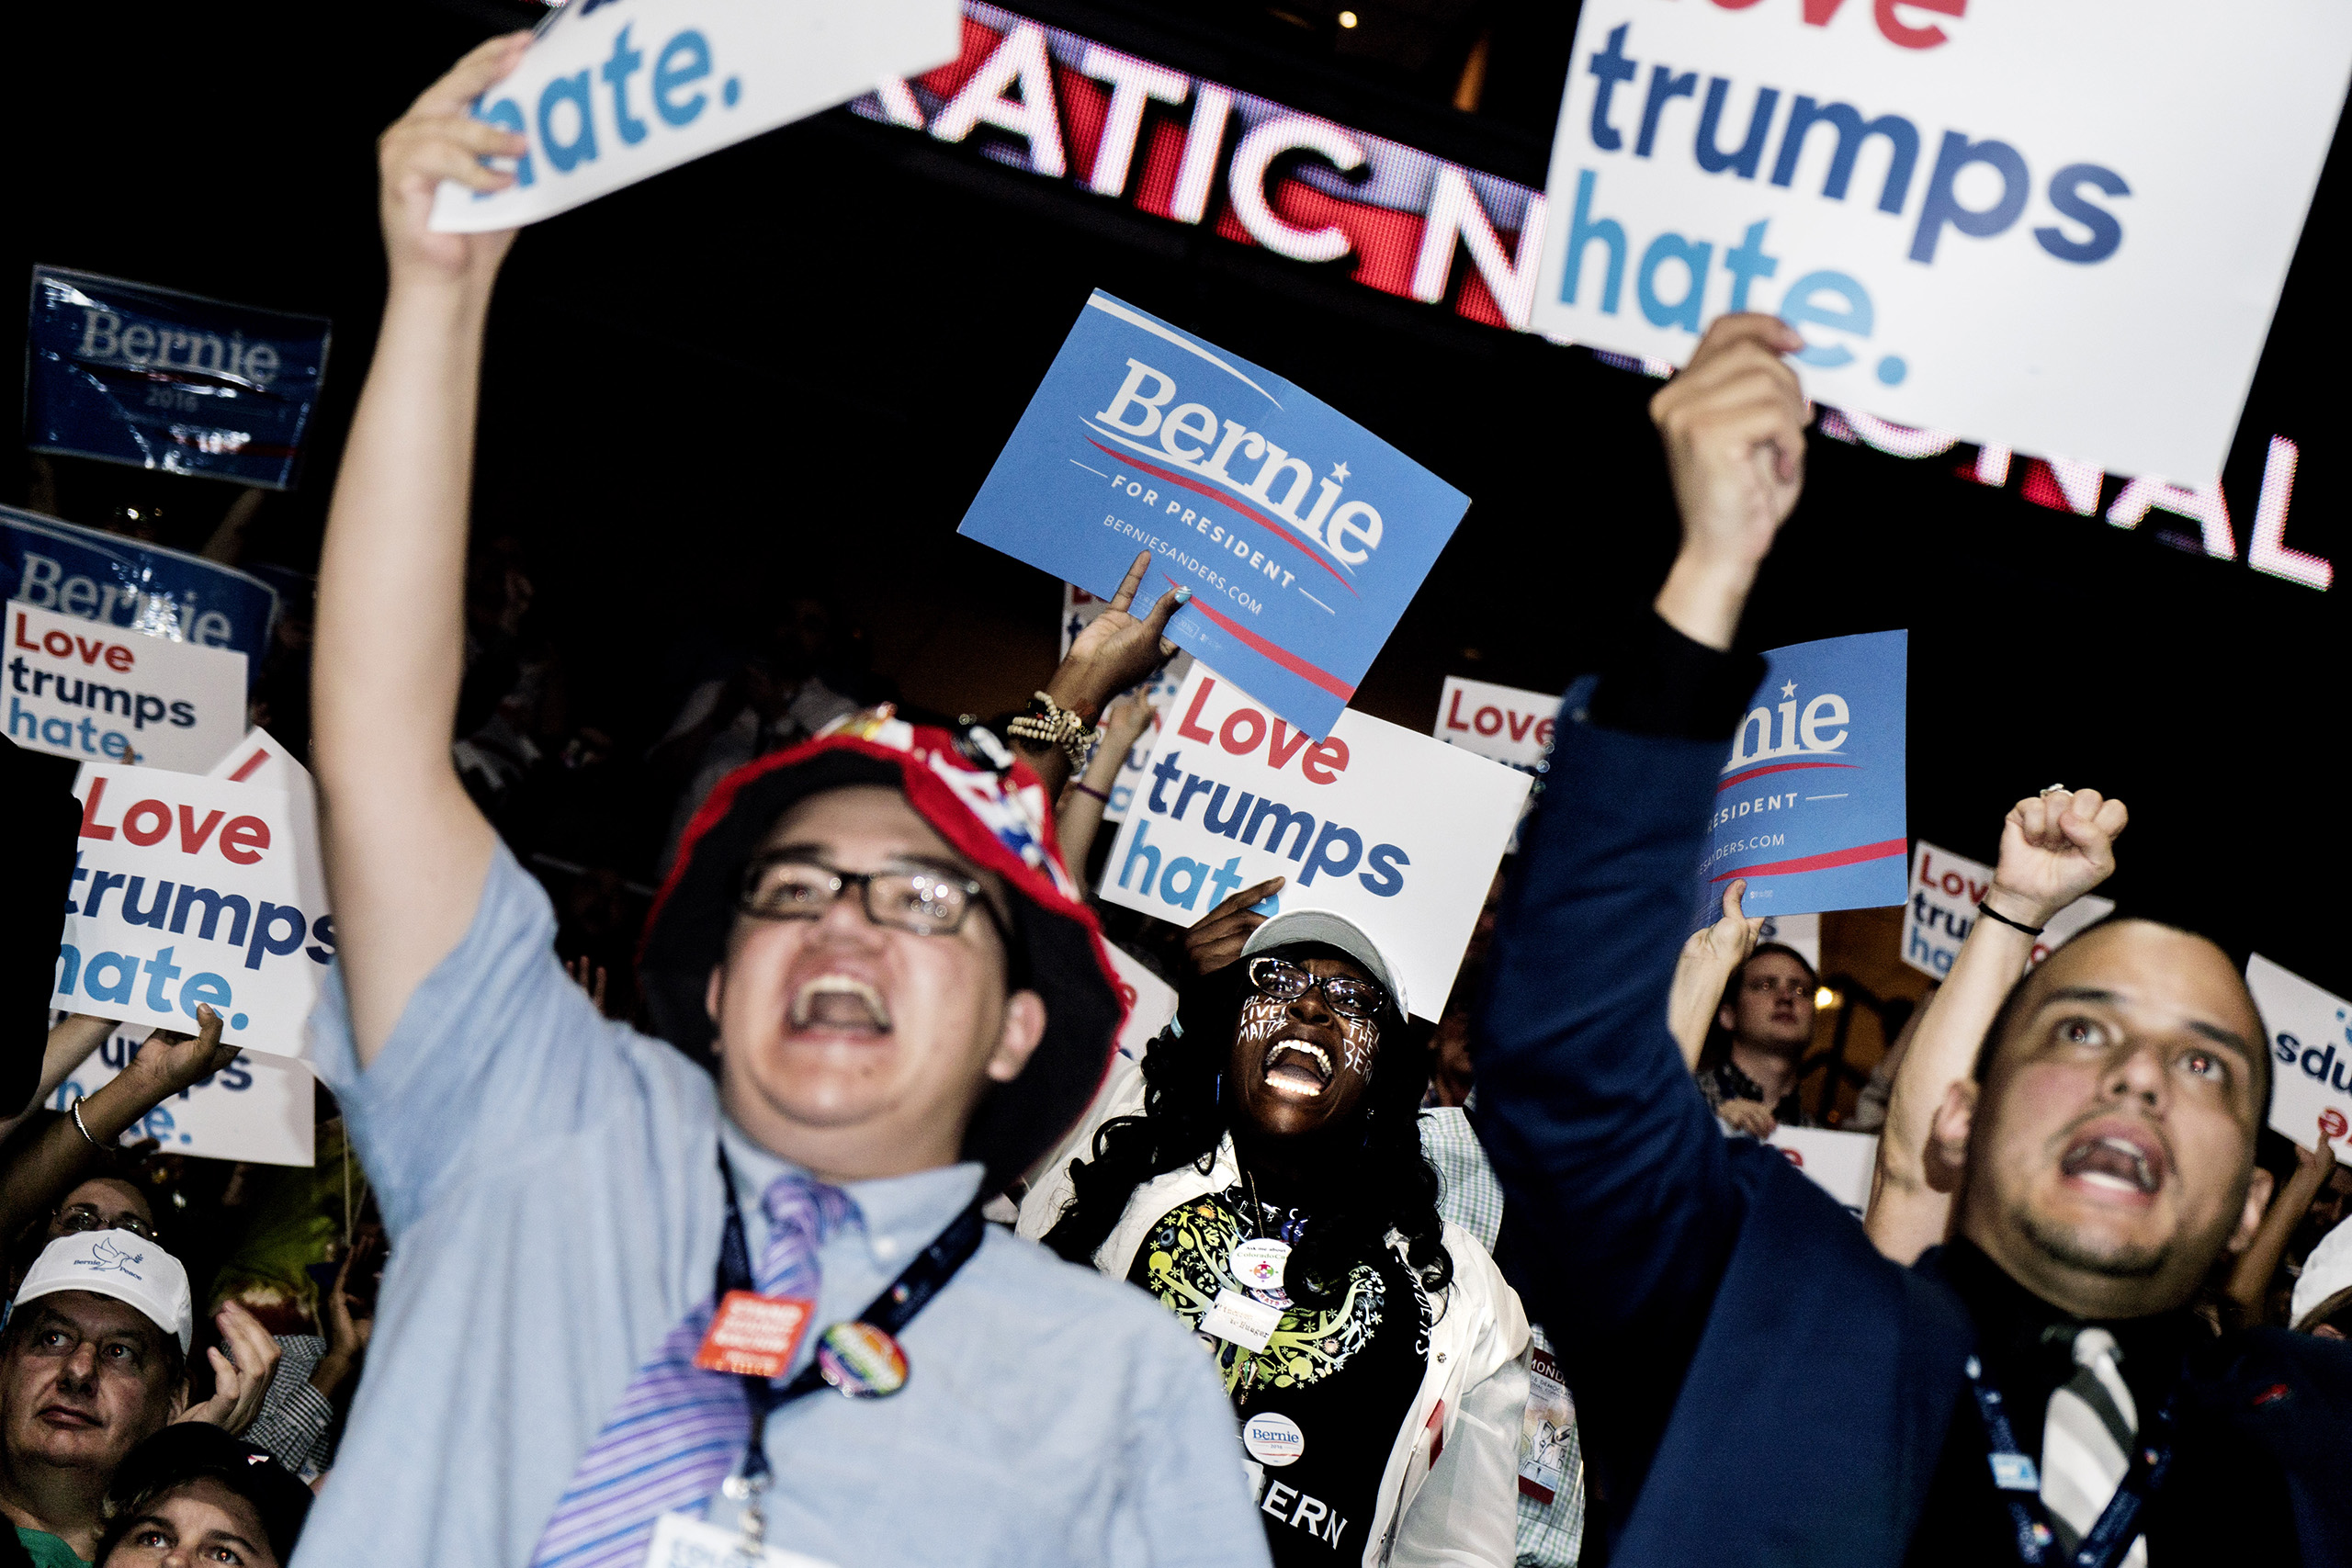 Delgates cheer on the first day of the Democratic National Convention at the Wells Fargo Center, July 25, 2016 in Philadelphia, Pennsylvania.